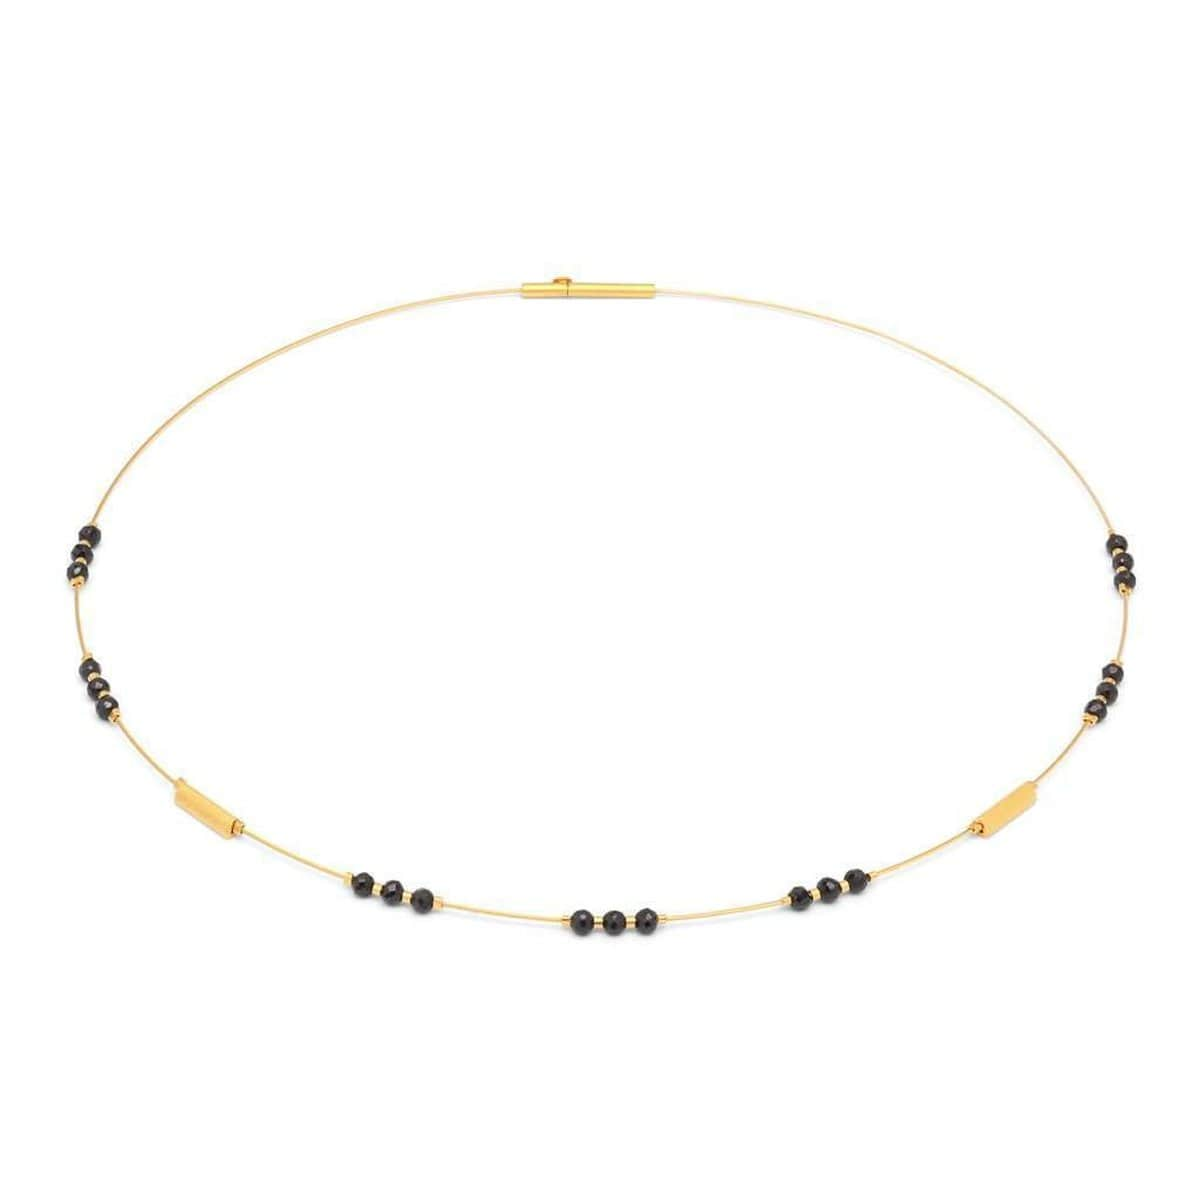 Demasta Black Spinel Necklace - 85160496-Bernd Wolf-Renee Taylor Gallery